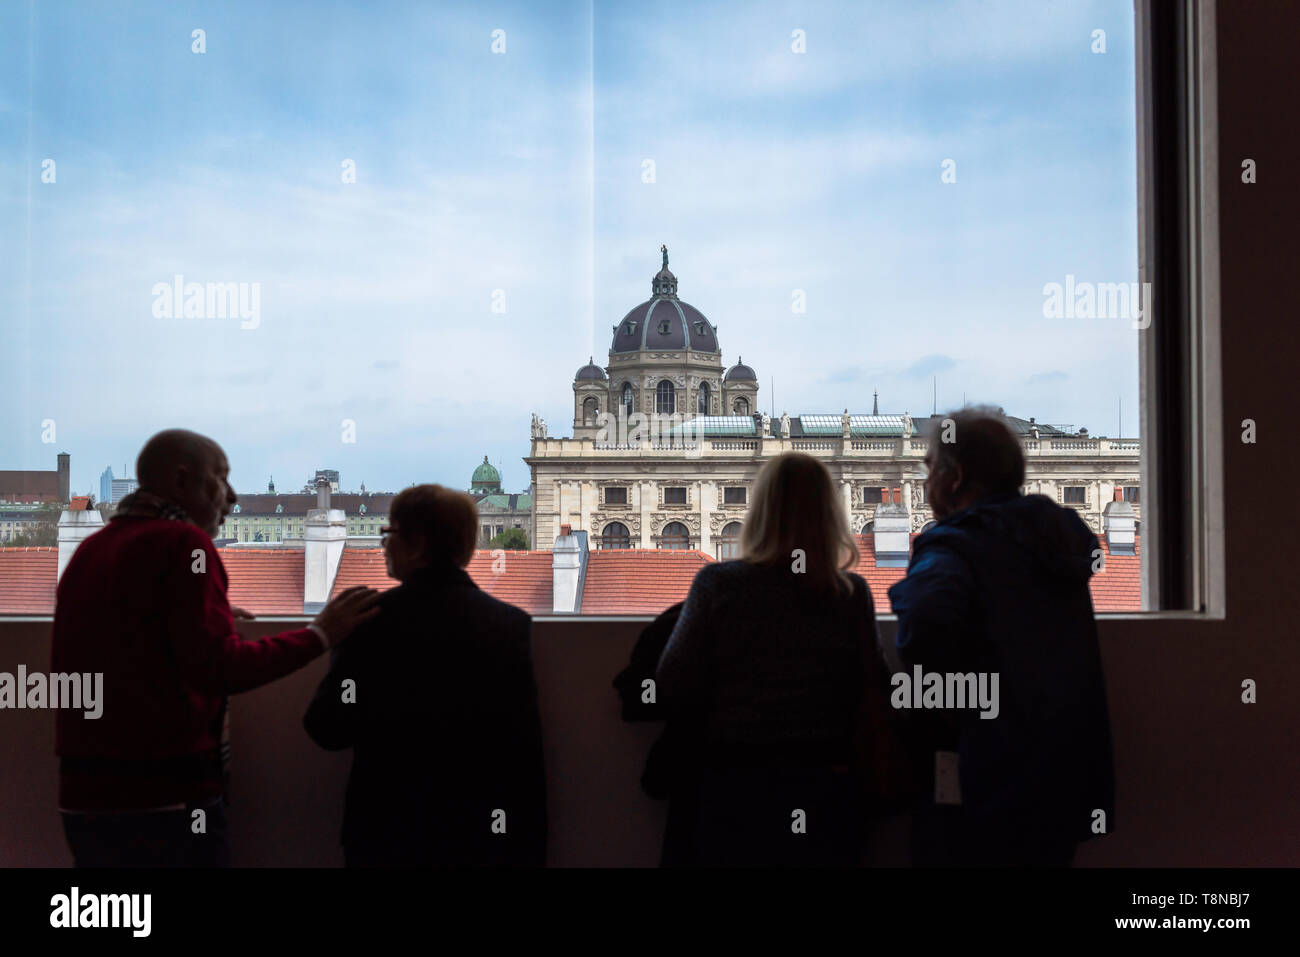 Rear view of four people inside the Leopold Museum in Vienna looking out at city buildings, Austria. Stock Photo